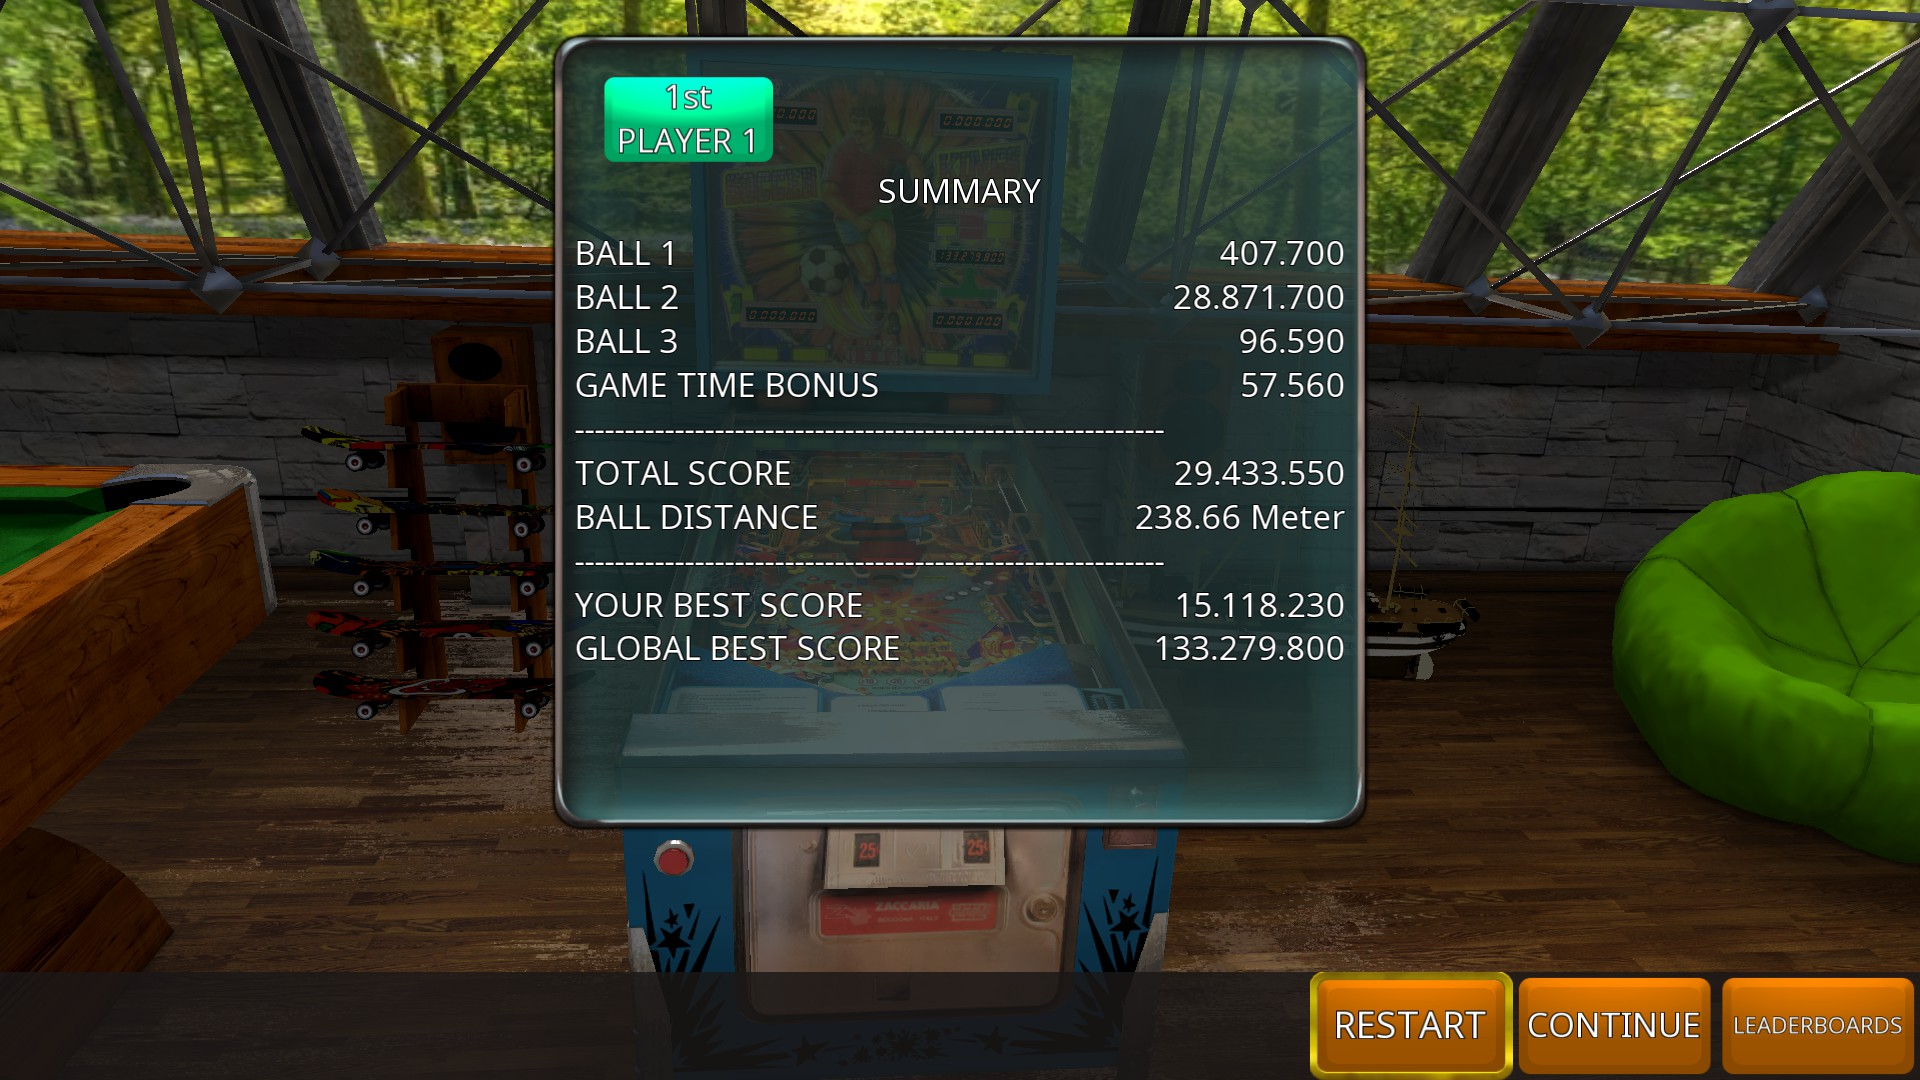 GTibel: Zaccaria Pinball: Soccer Kings [3 balls] (PC) 29,433,550 points on 2018-08-02 09:13:27